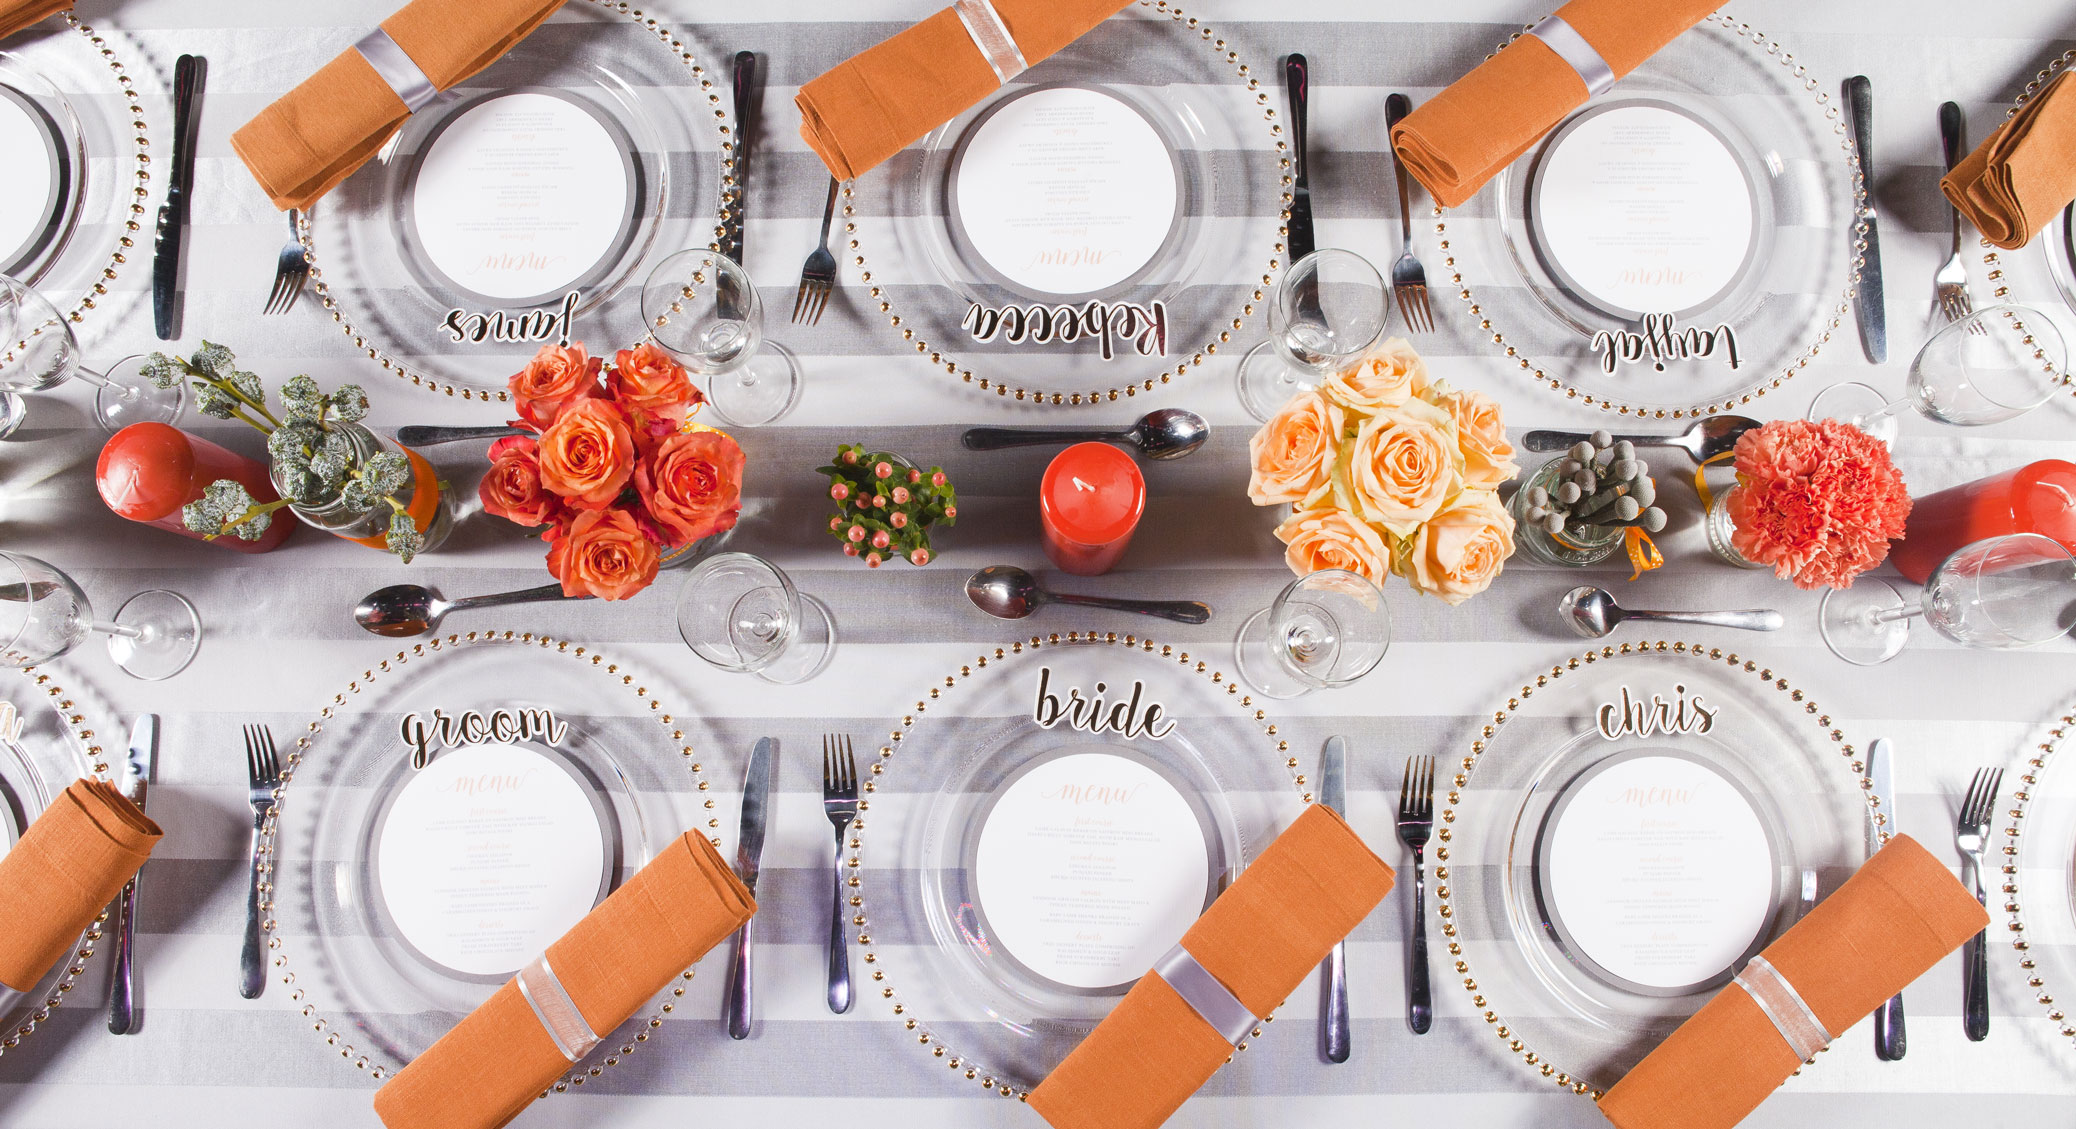 Pantone's Cadmium Orange and Stormy Weather table setting